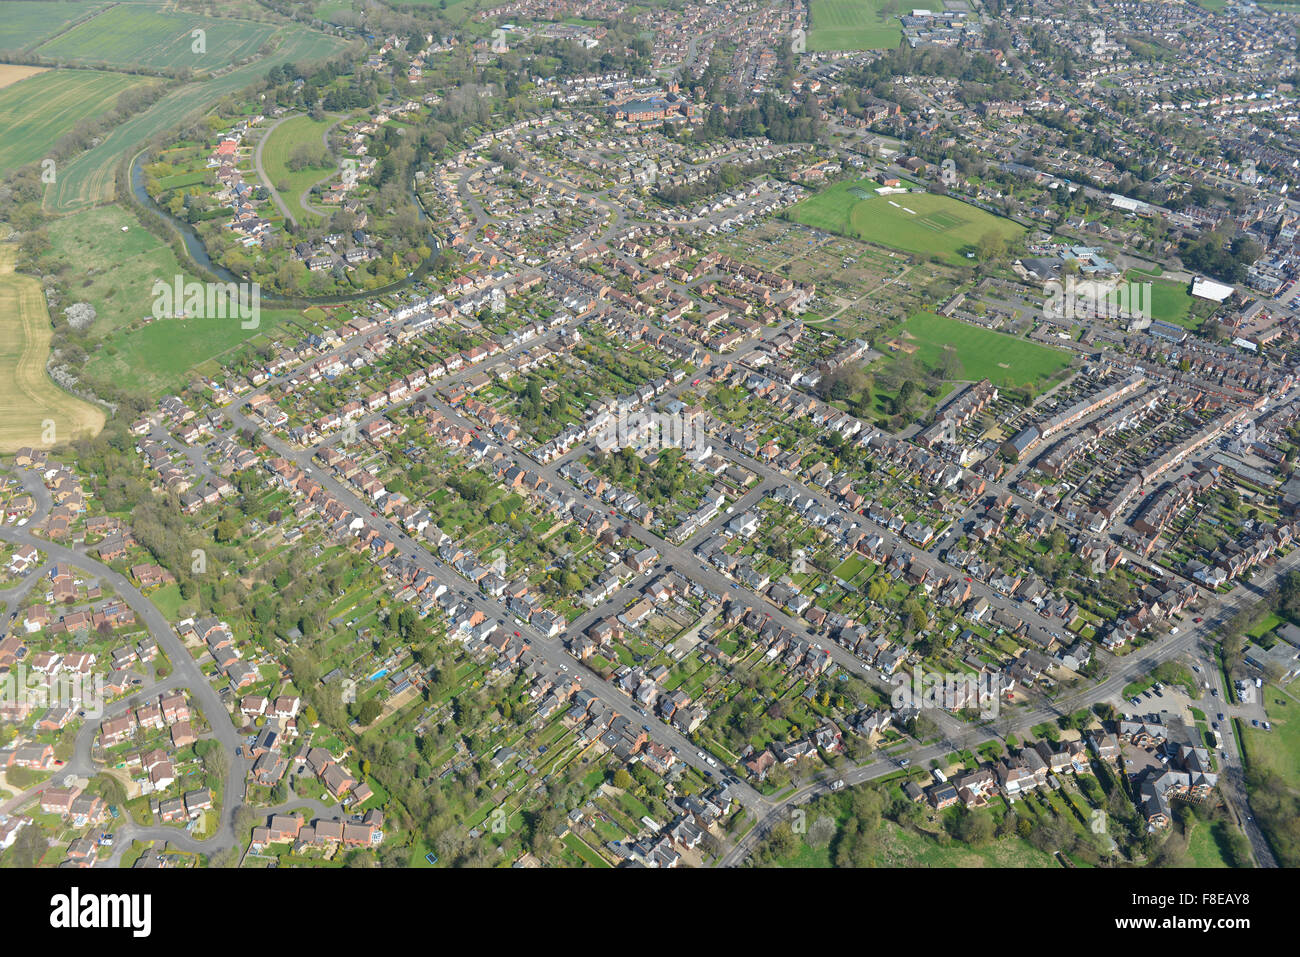 An aerial view of the Leicestershire town of Market Harborough - Stock Image